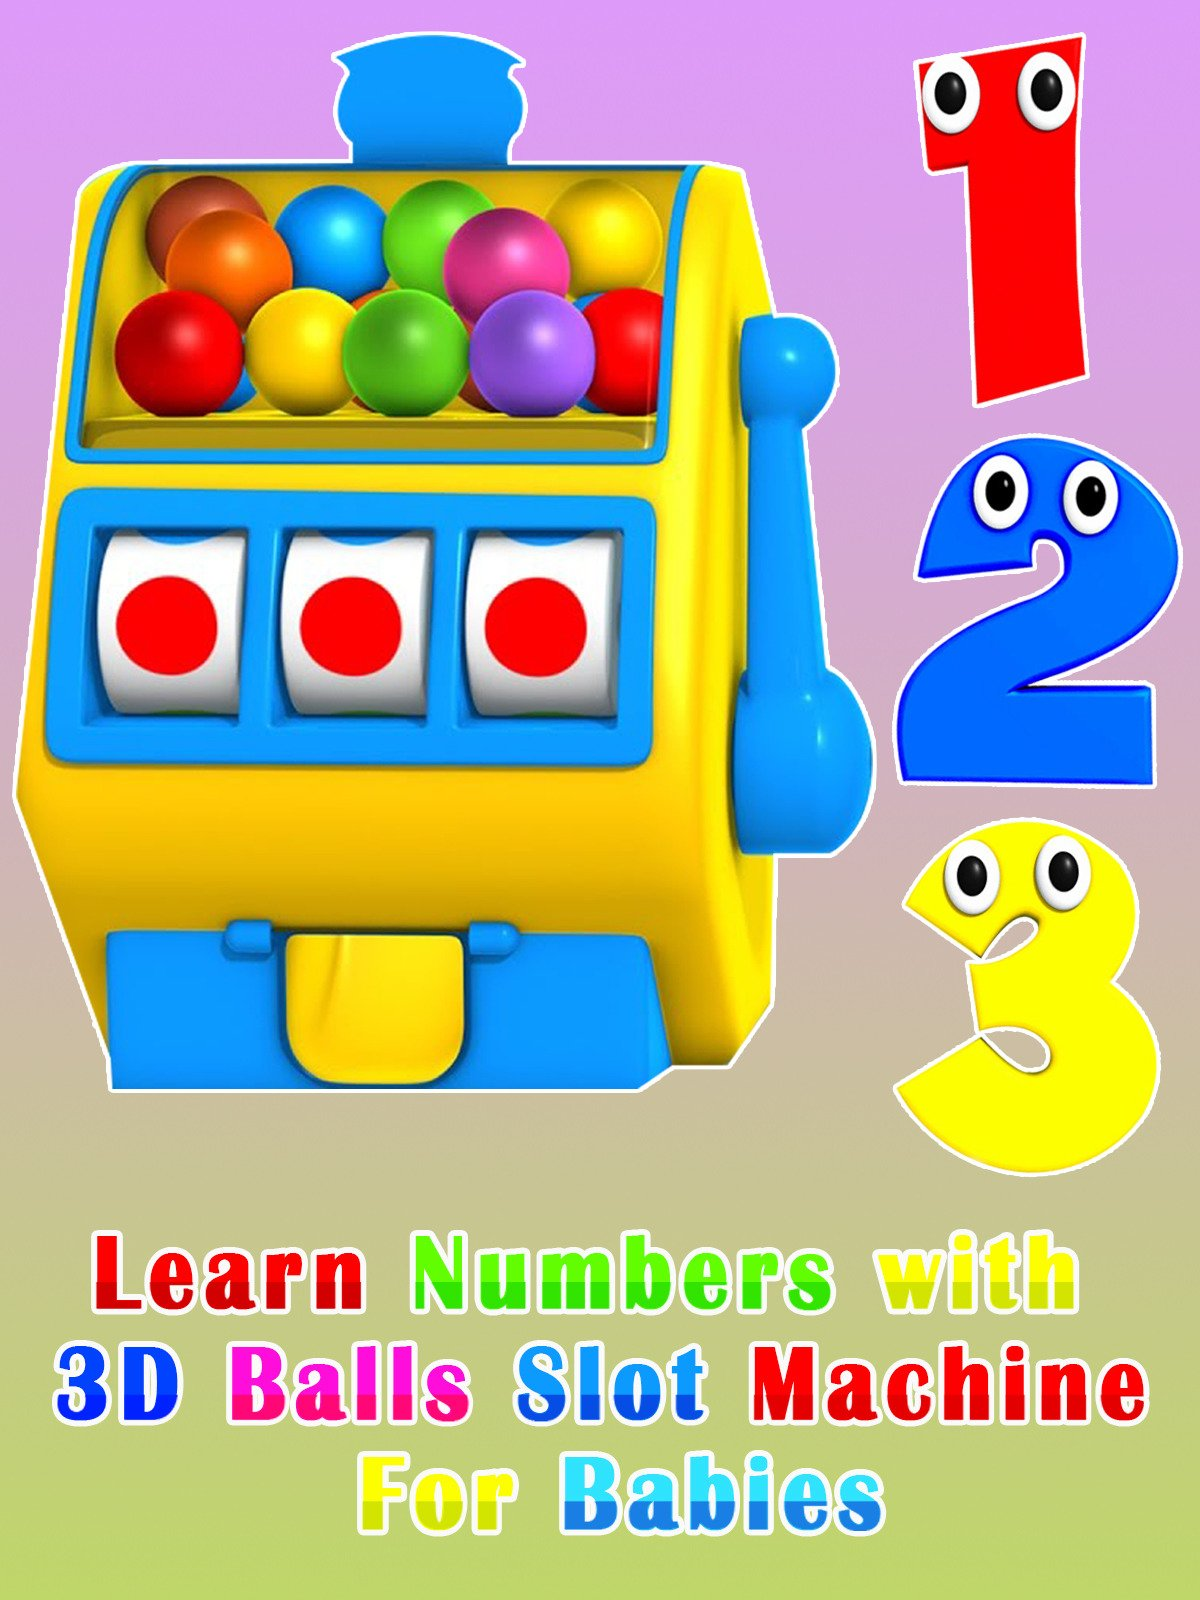 Learn Numbers with Balls Slot Machine For Babies